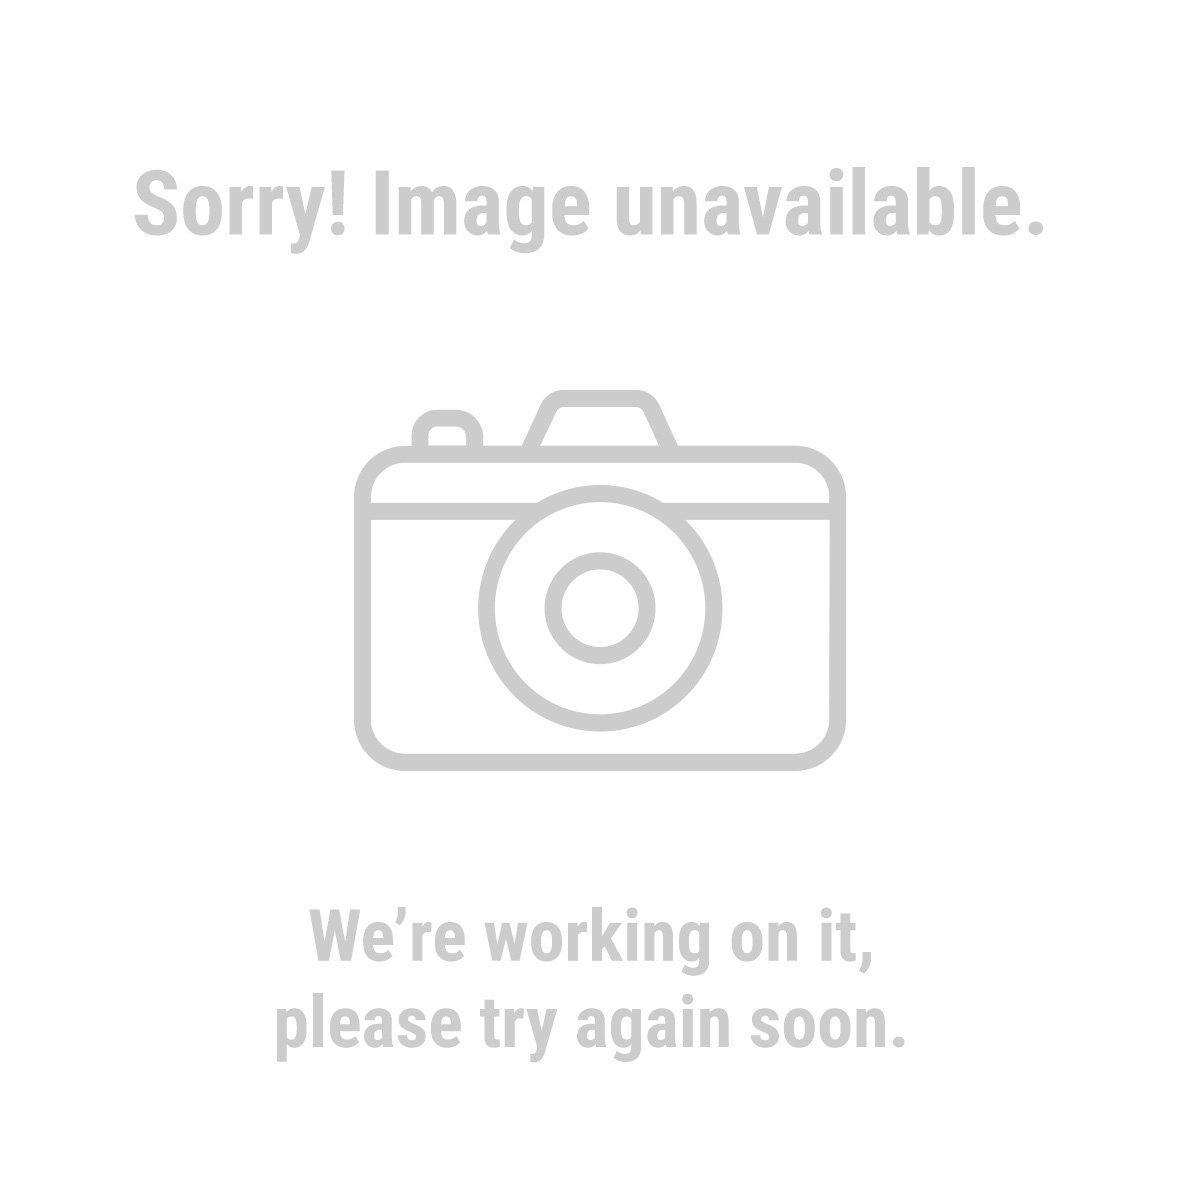 Pittsburgh 30024 2 Piece Welding and Sheet Metal Clamp Set